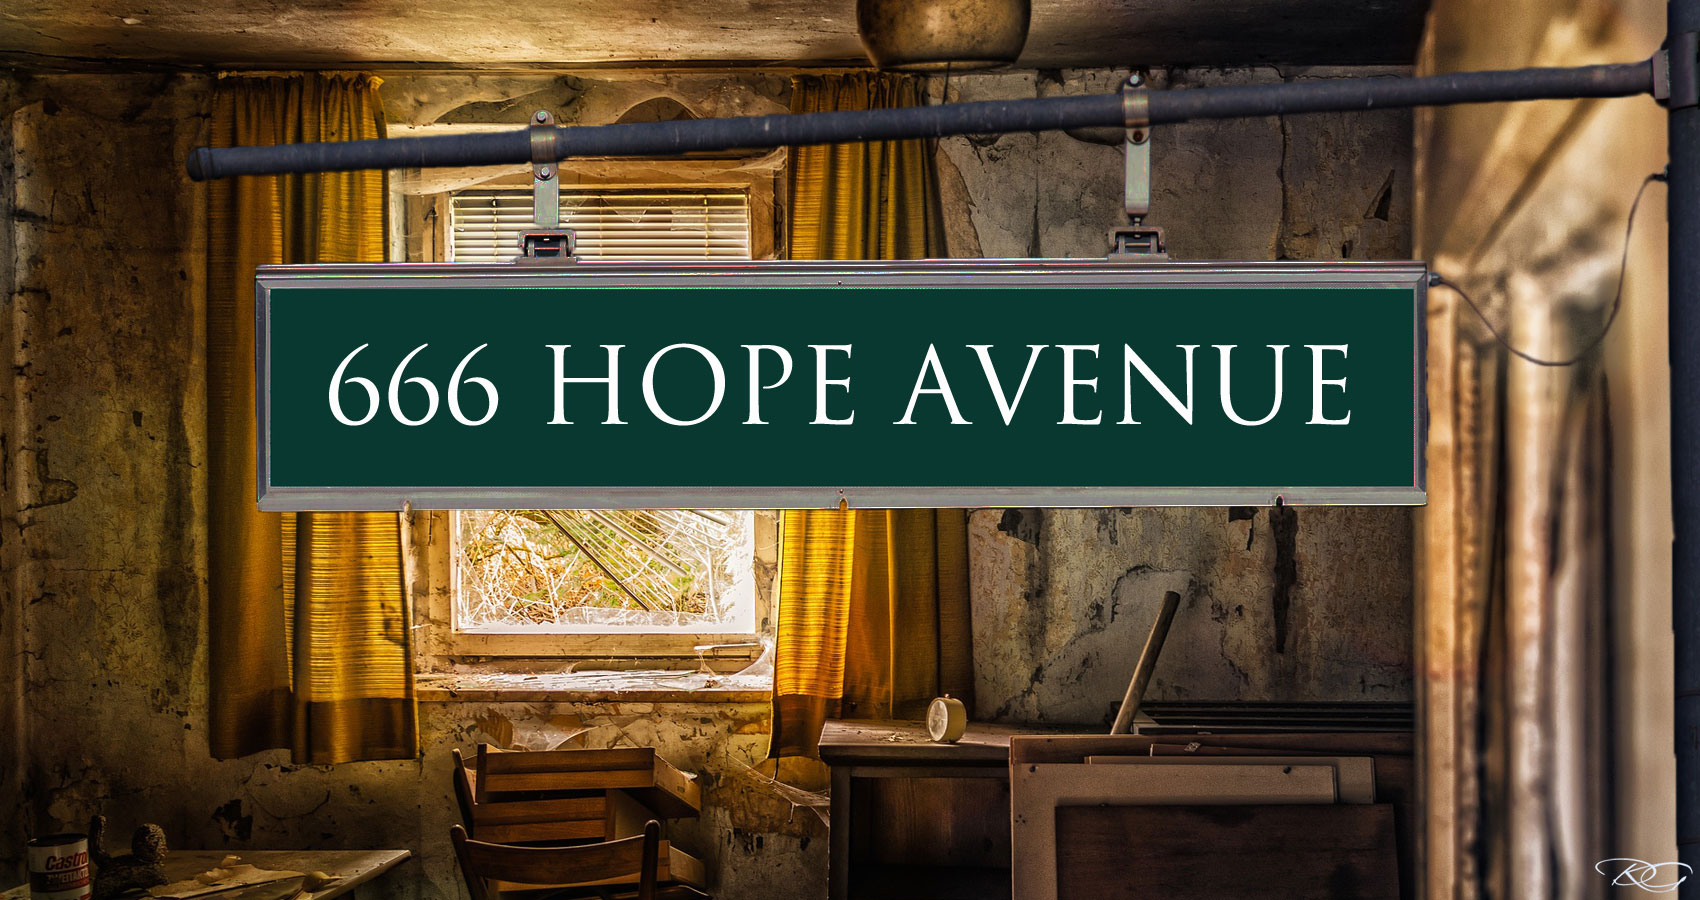 666 Hope Avenue, a poem written by Godfrey Holy at Spillwords.com